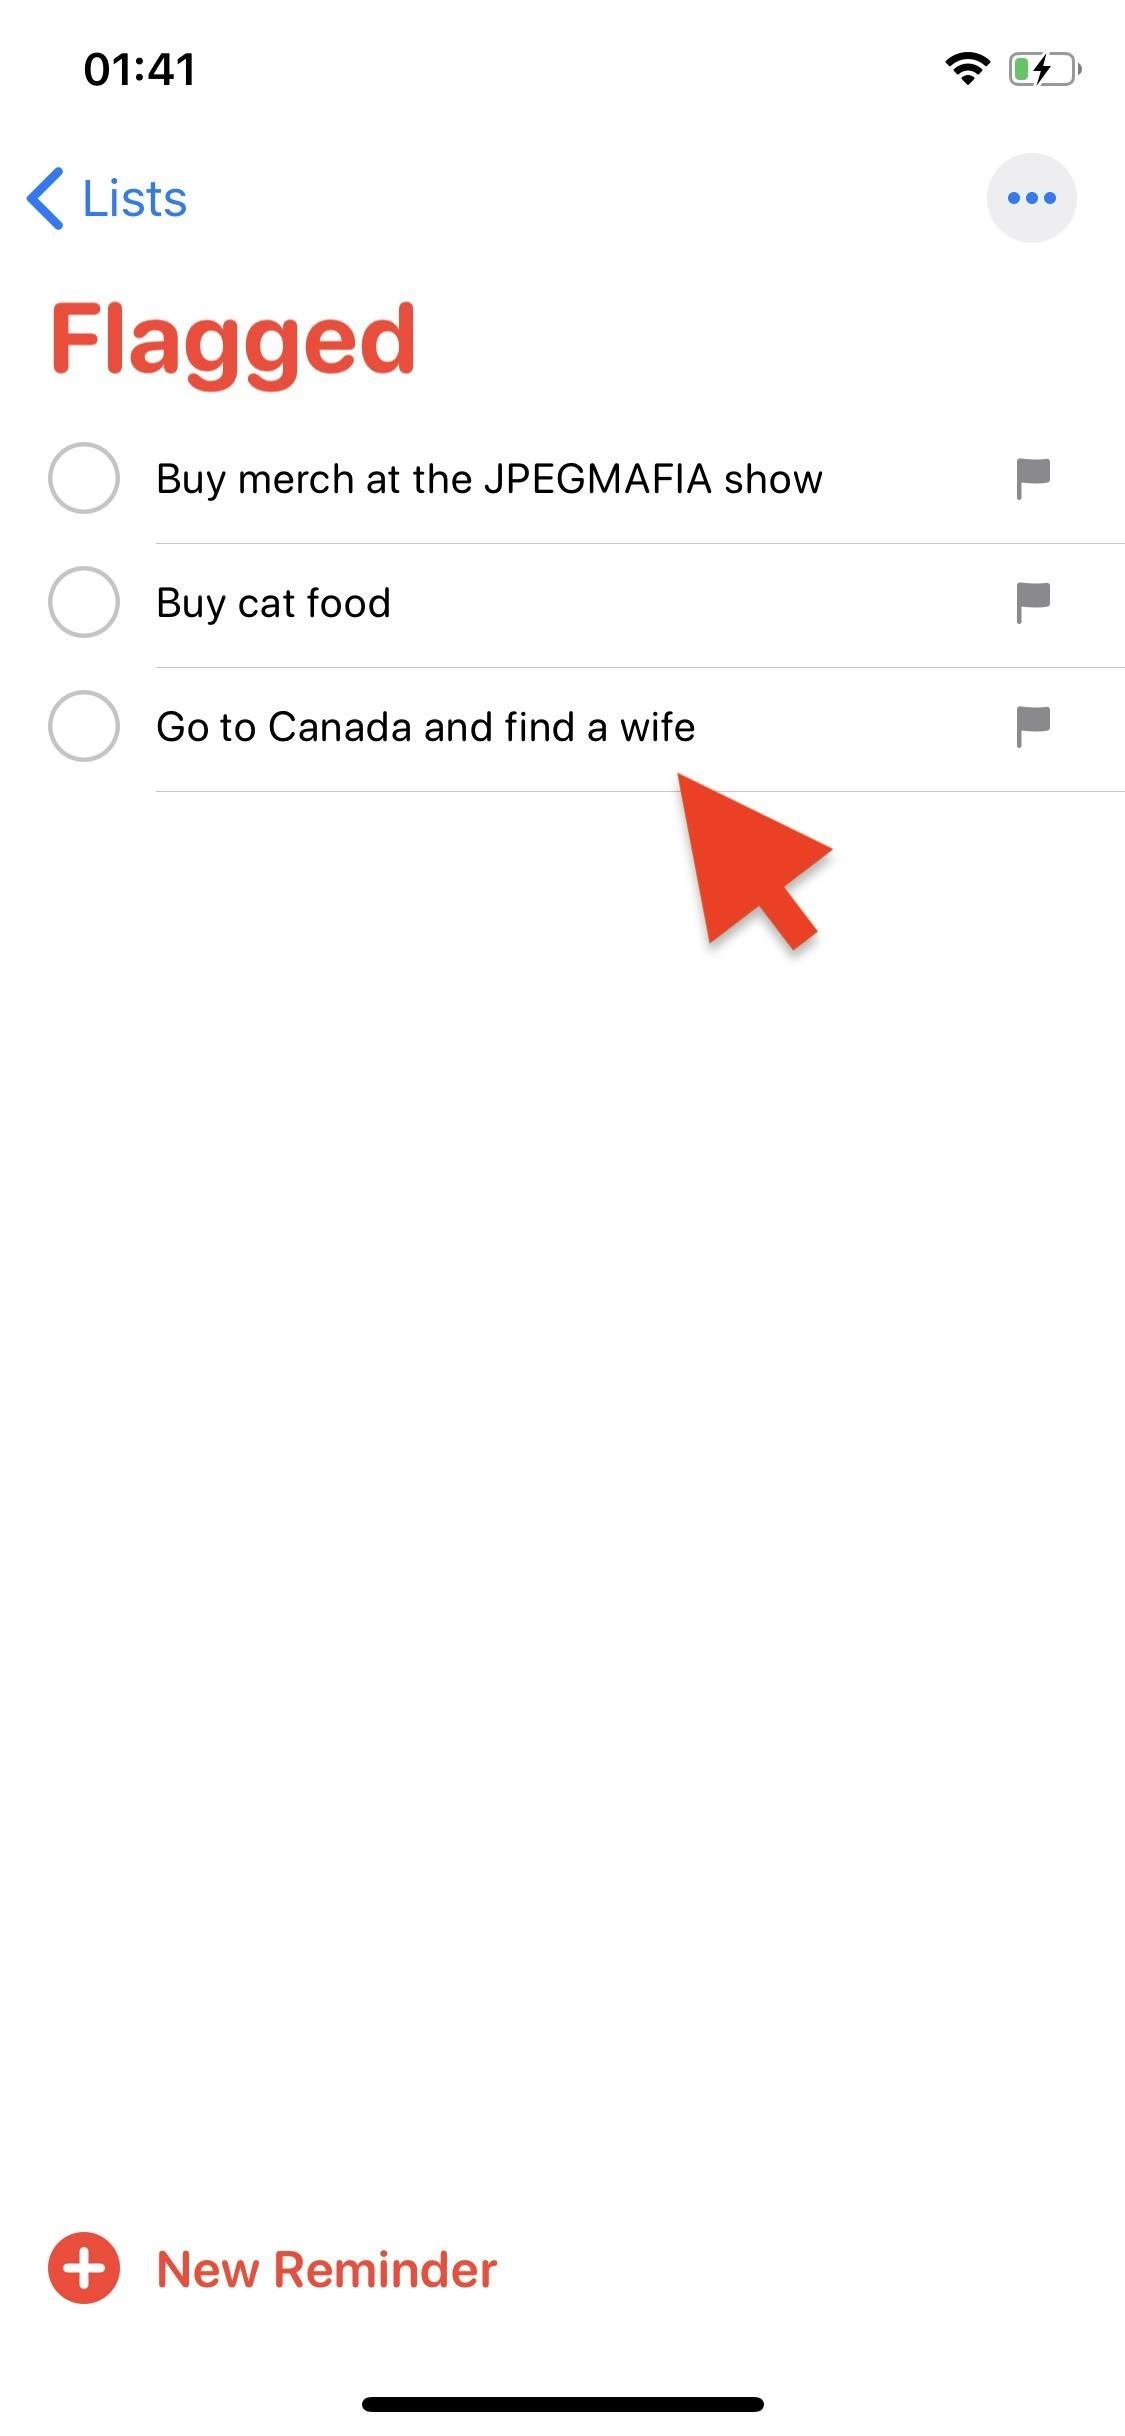 How to Flag Important Reminders in iOS 13 to Make Them Easier to Find